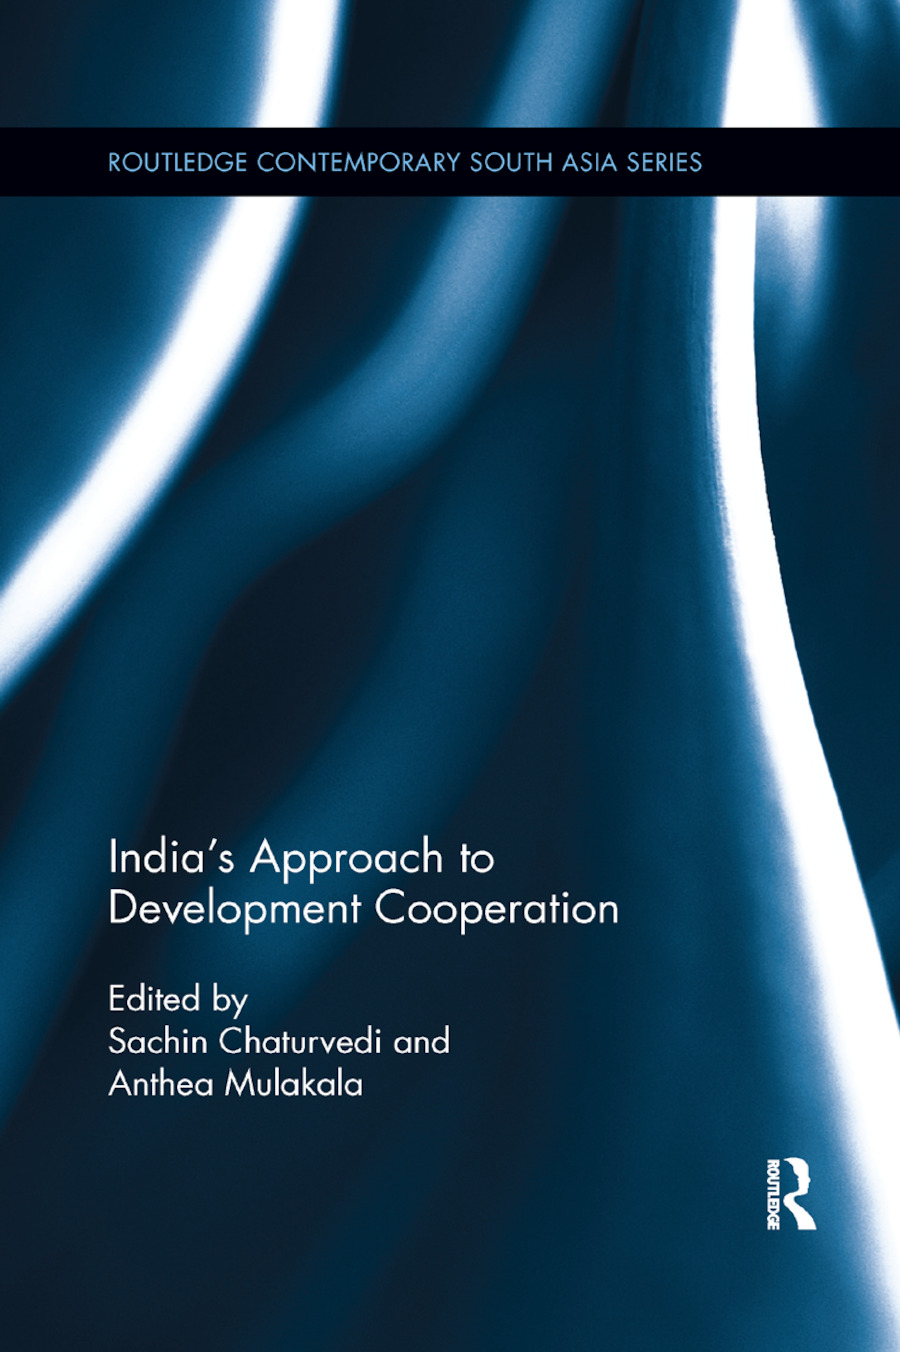 Civil society organisations and Indian development assistance: emerging roles for commentators, collaborators, and critics